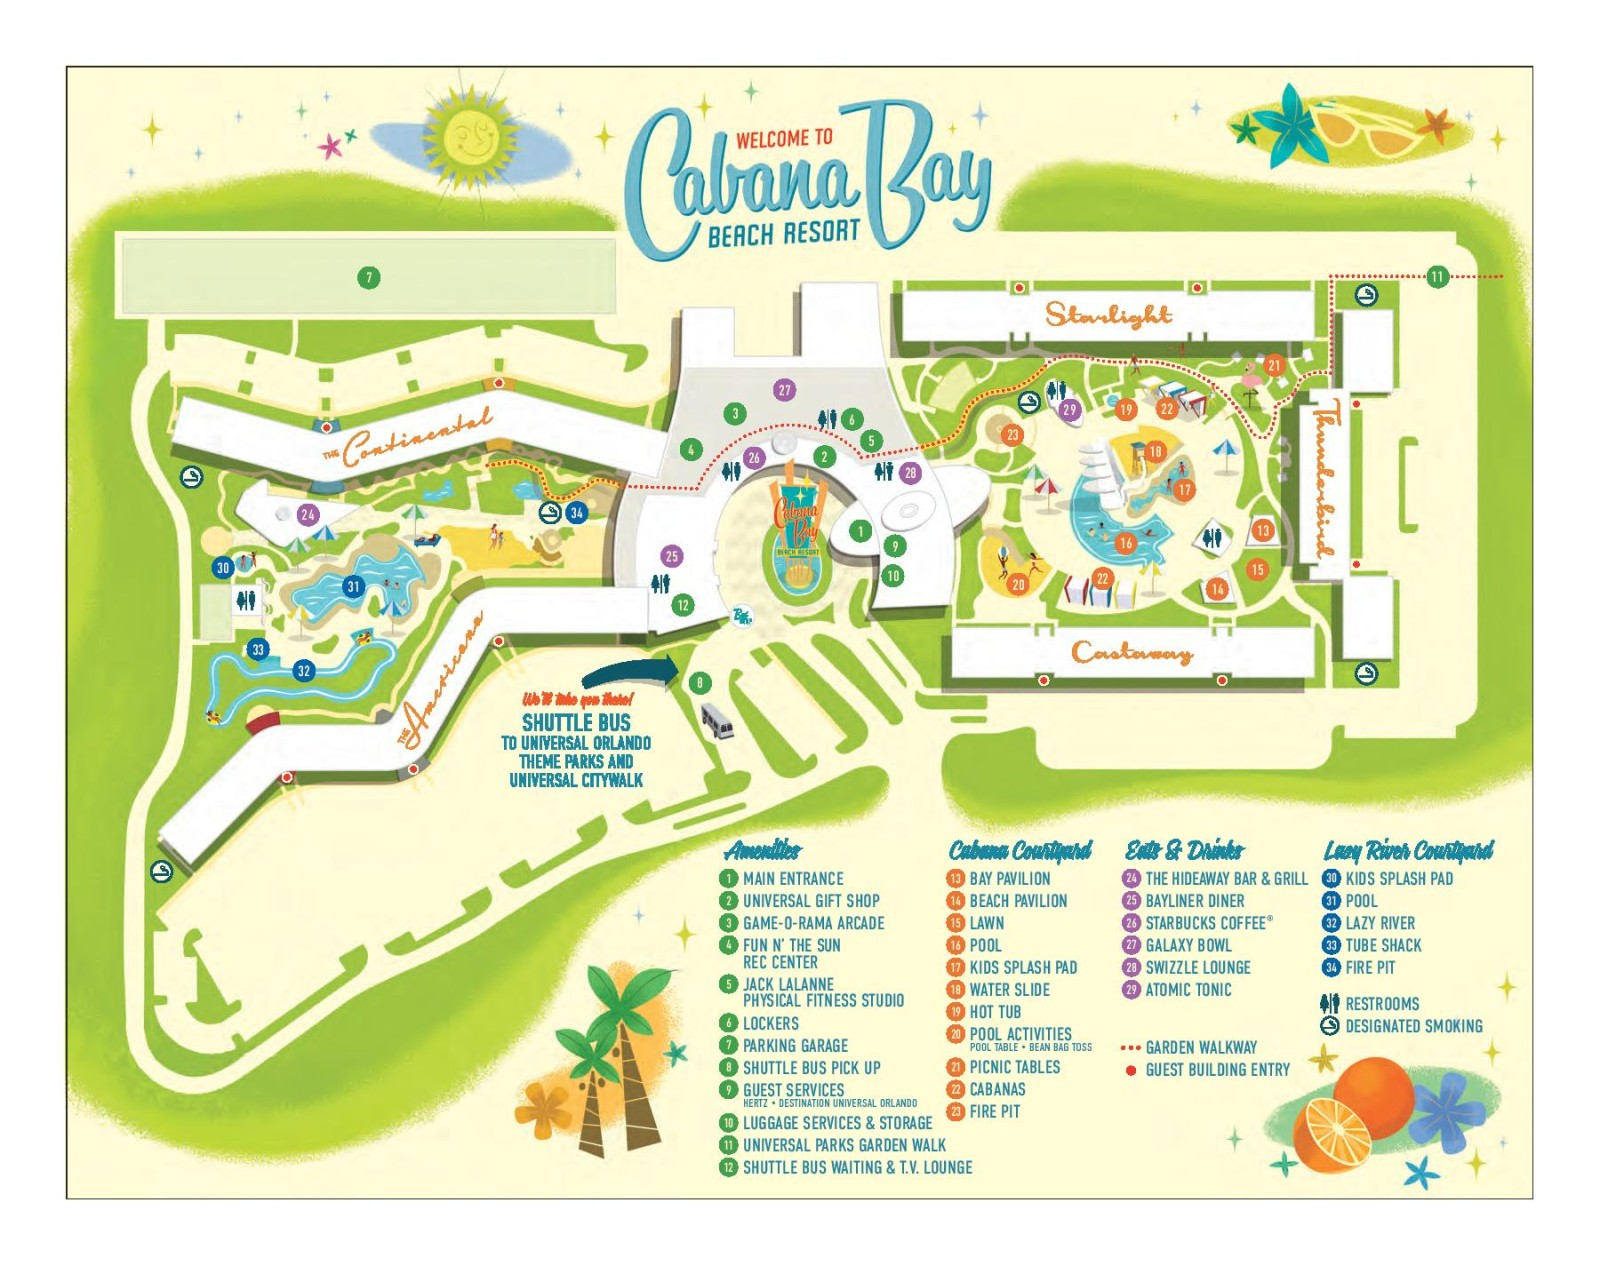 ... : The Perks Of Staying At Cabana Bay Beach Resort - On the Go in MCO